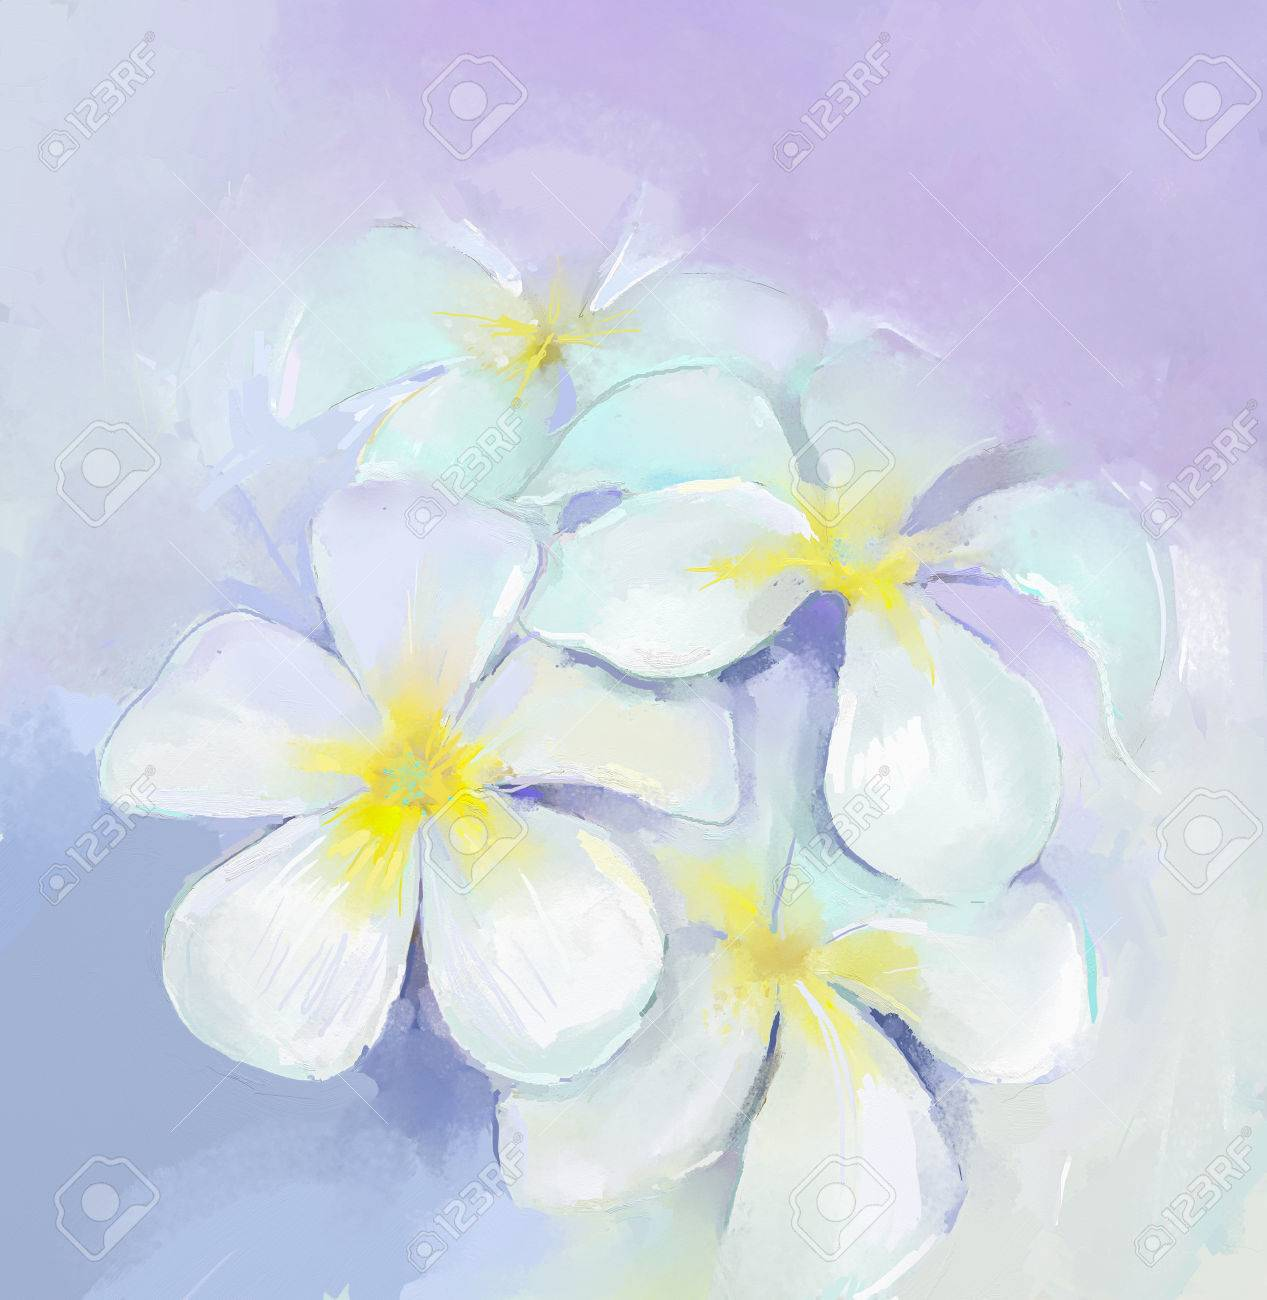 Plumeria frangipani oil paintingwhite flowers oil painting stock plumeria frangipani oil paintingwhite flowers oil painting stock photo 43543508 mightylinksfo